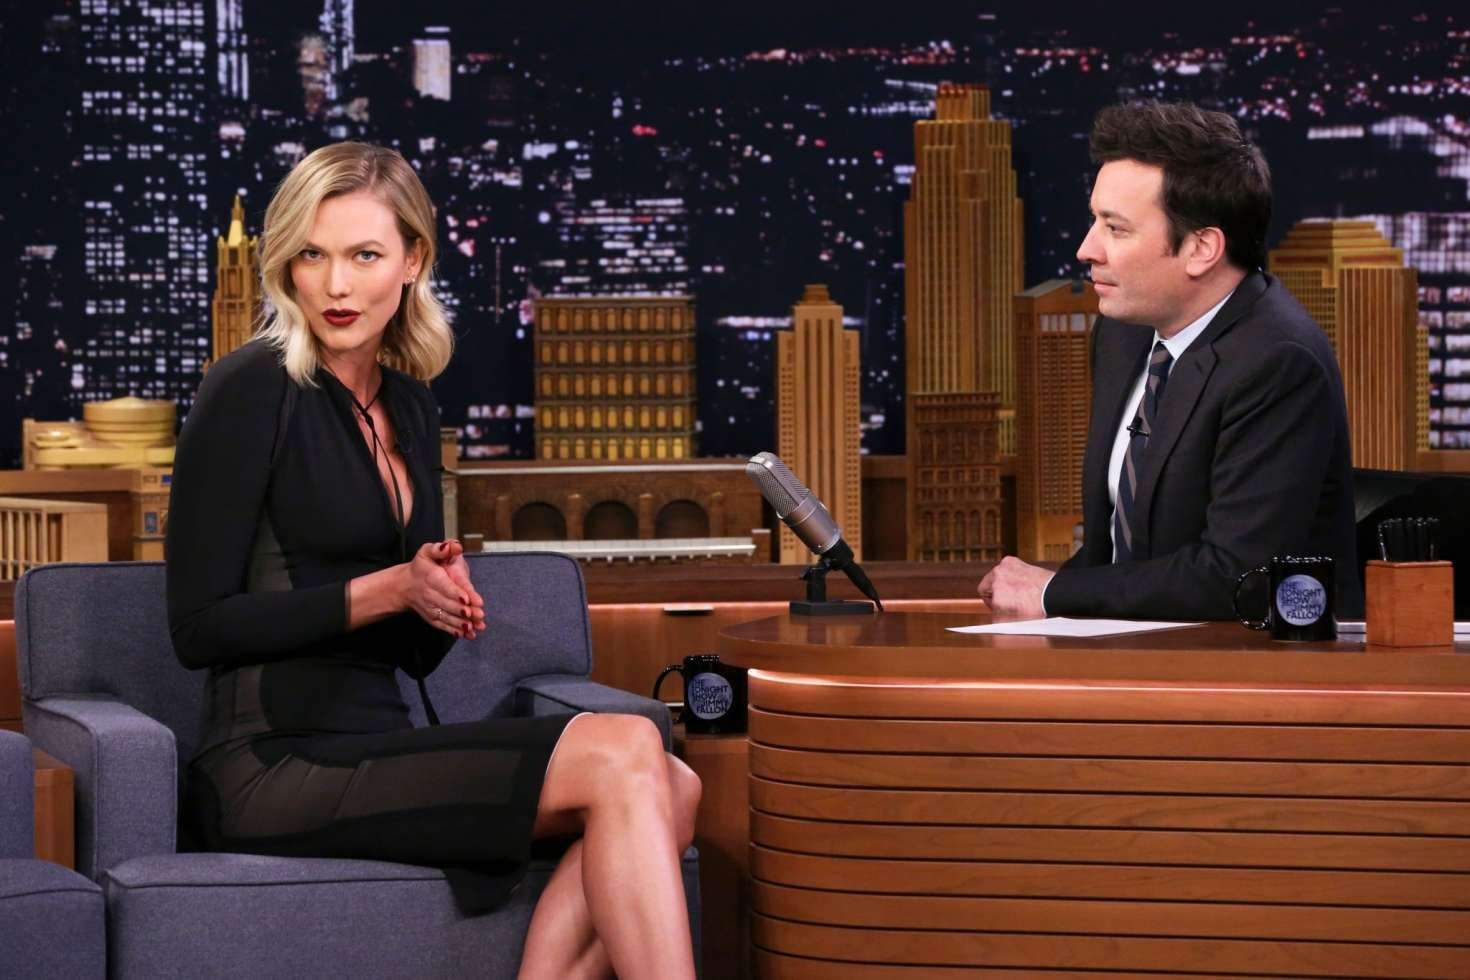 Karlie Kloss with Jimmy Fallon at the 'The Tonight Show in New York, 2019